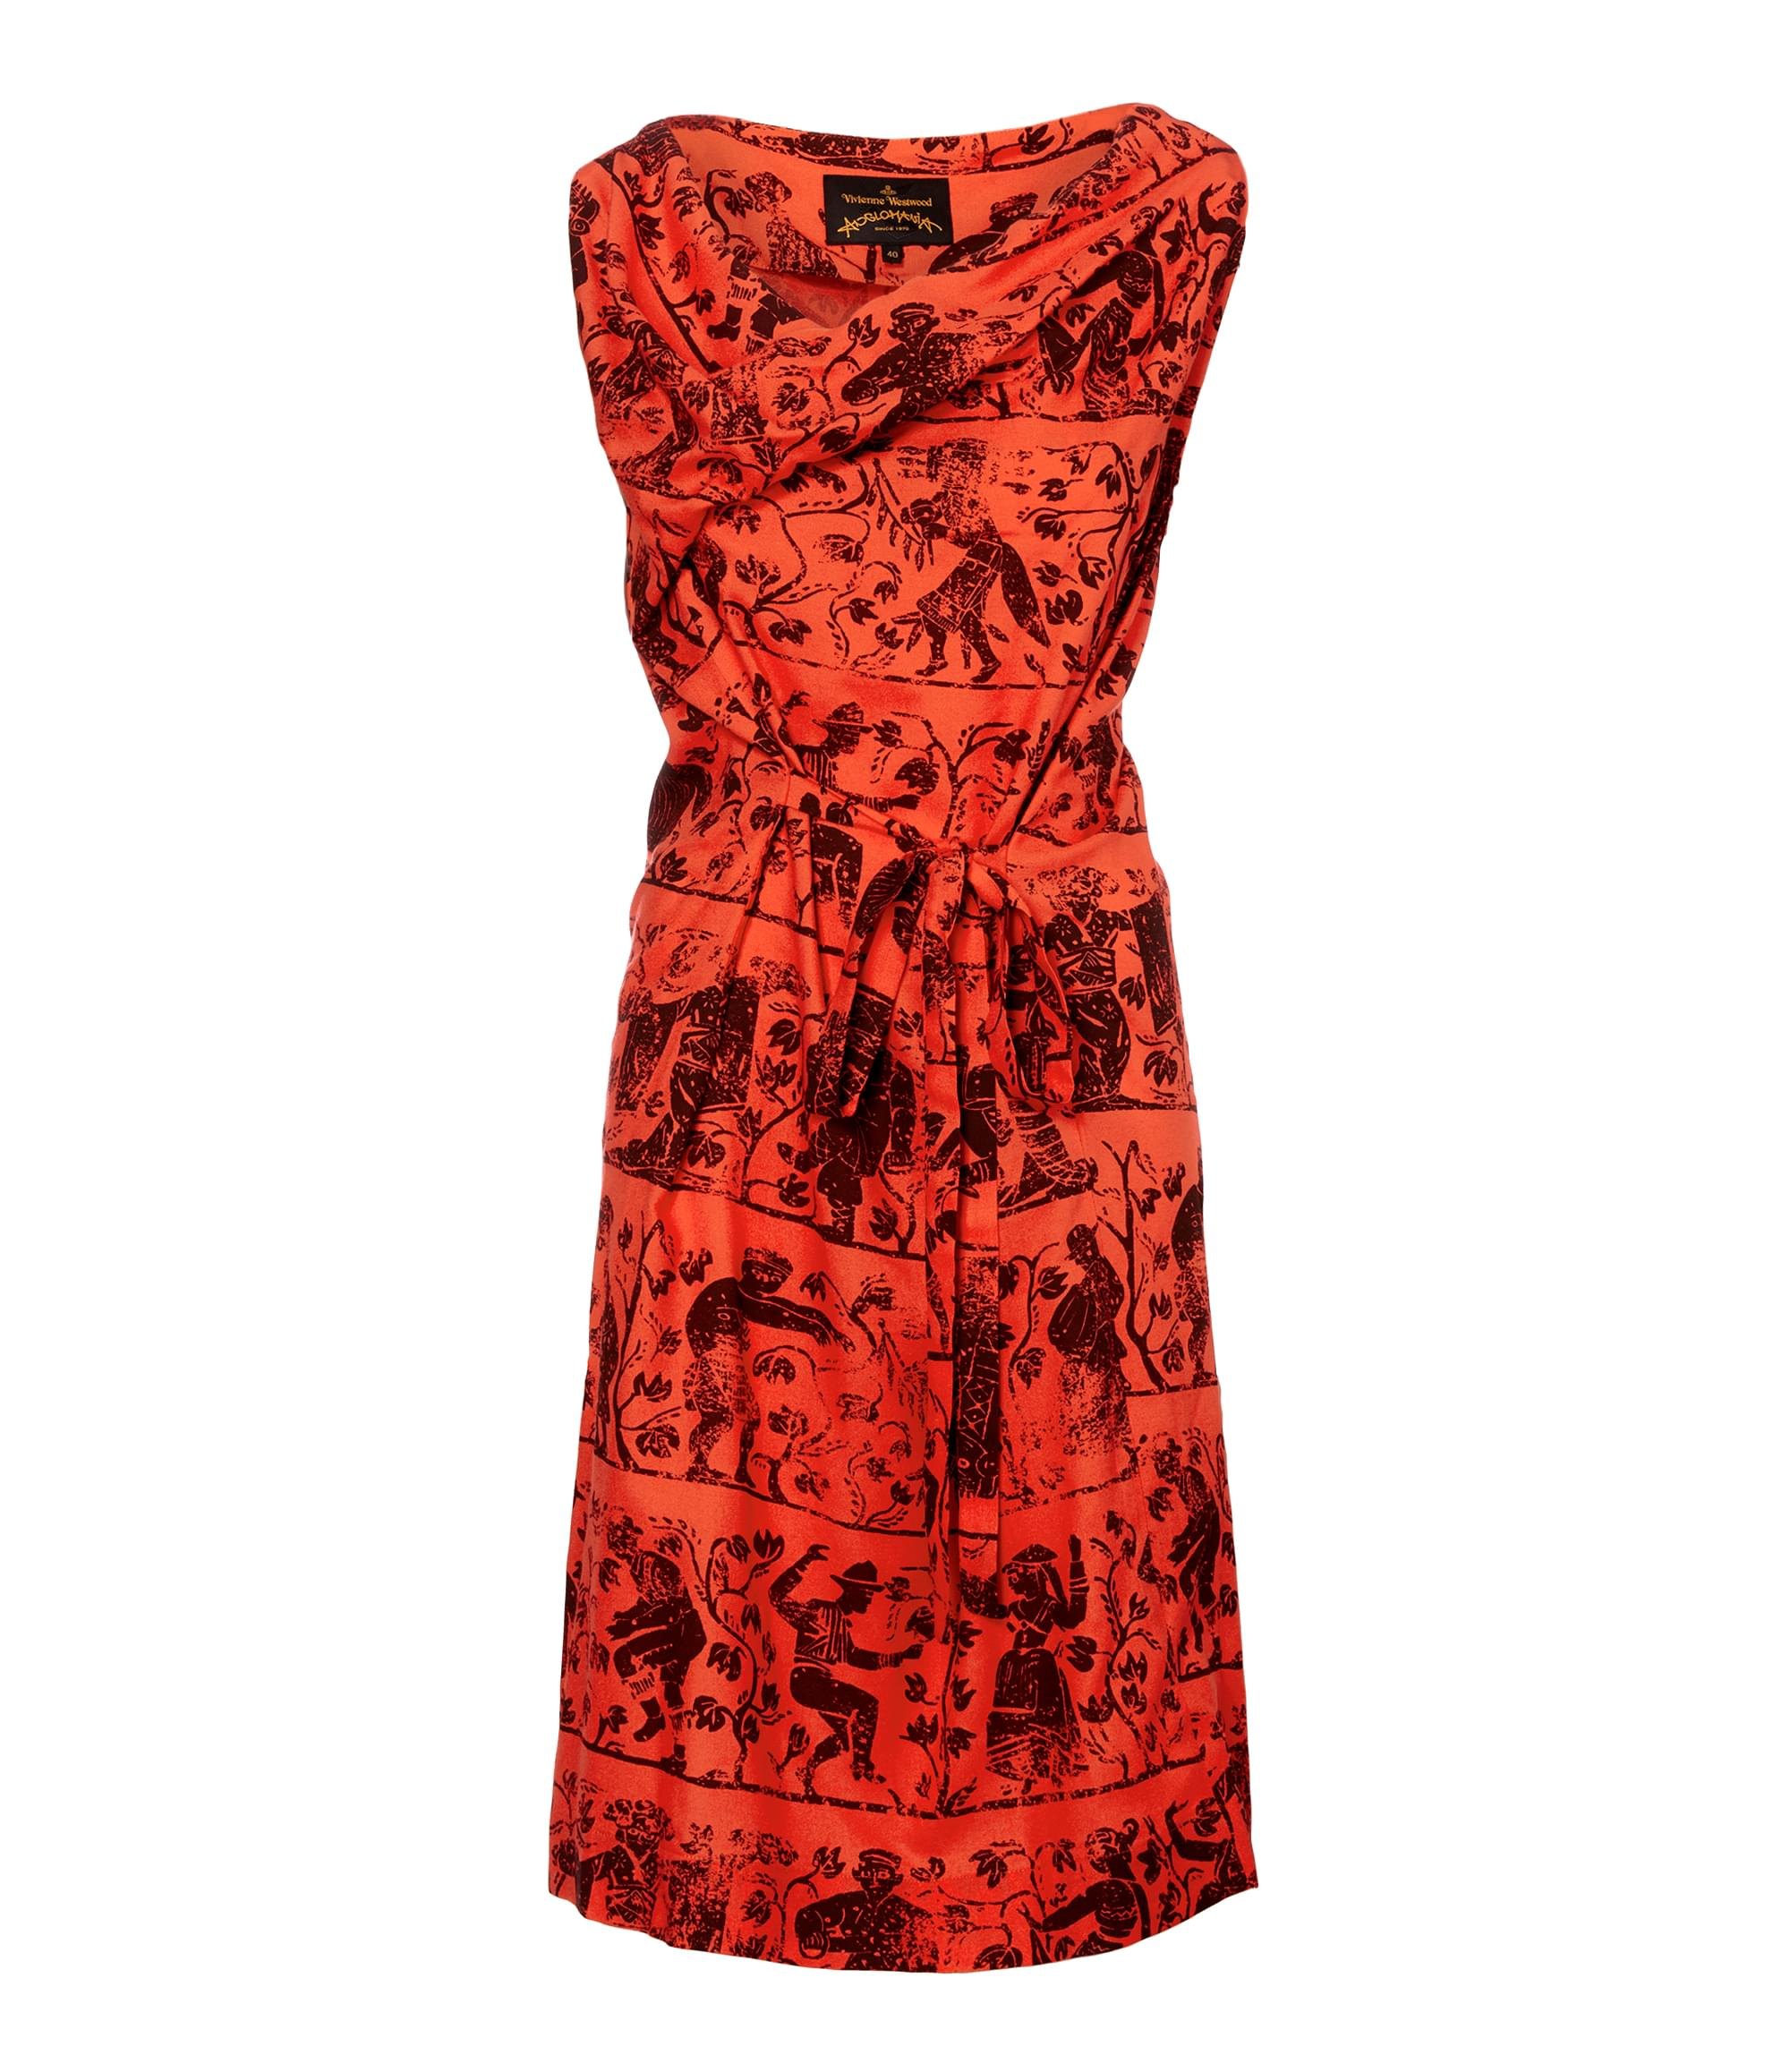 Vivienne Westwood Flame Twisted Dress